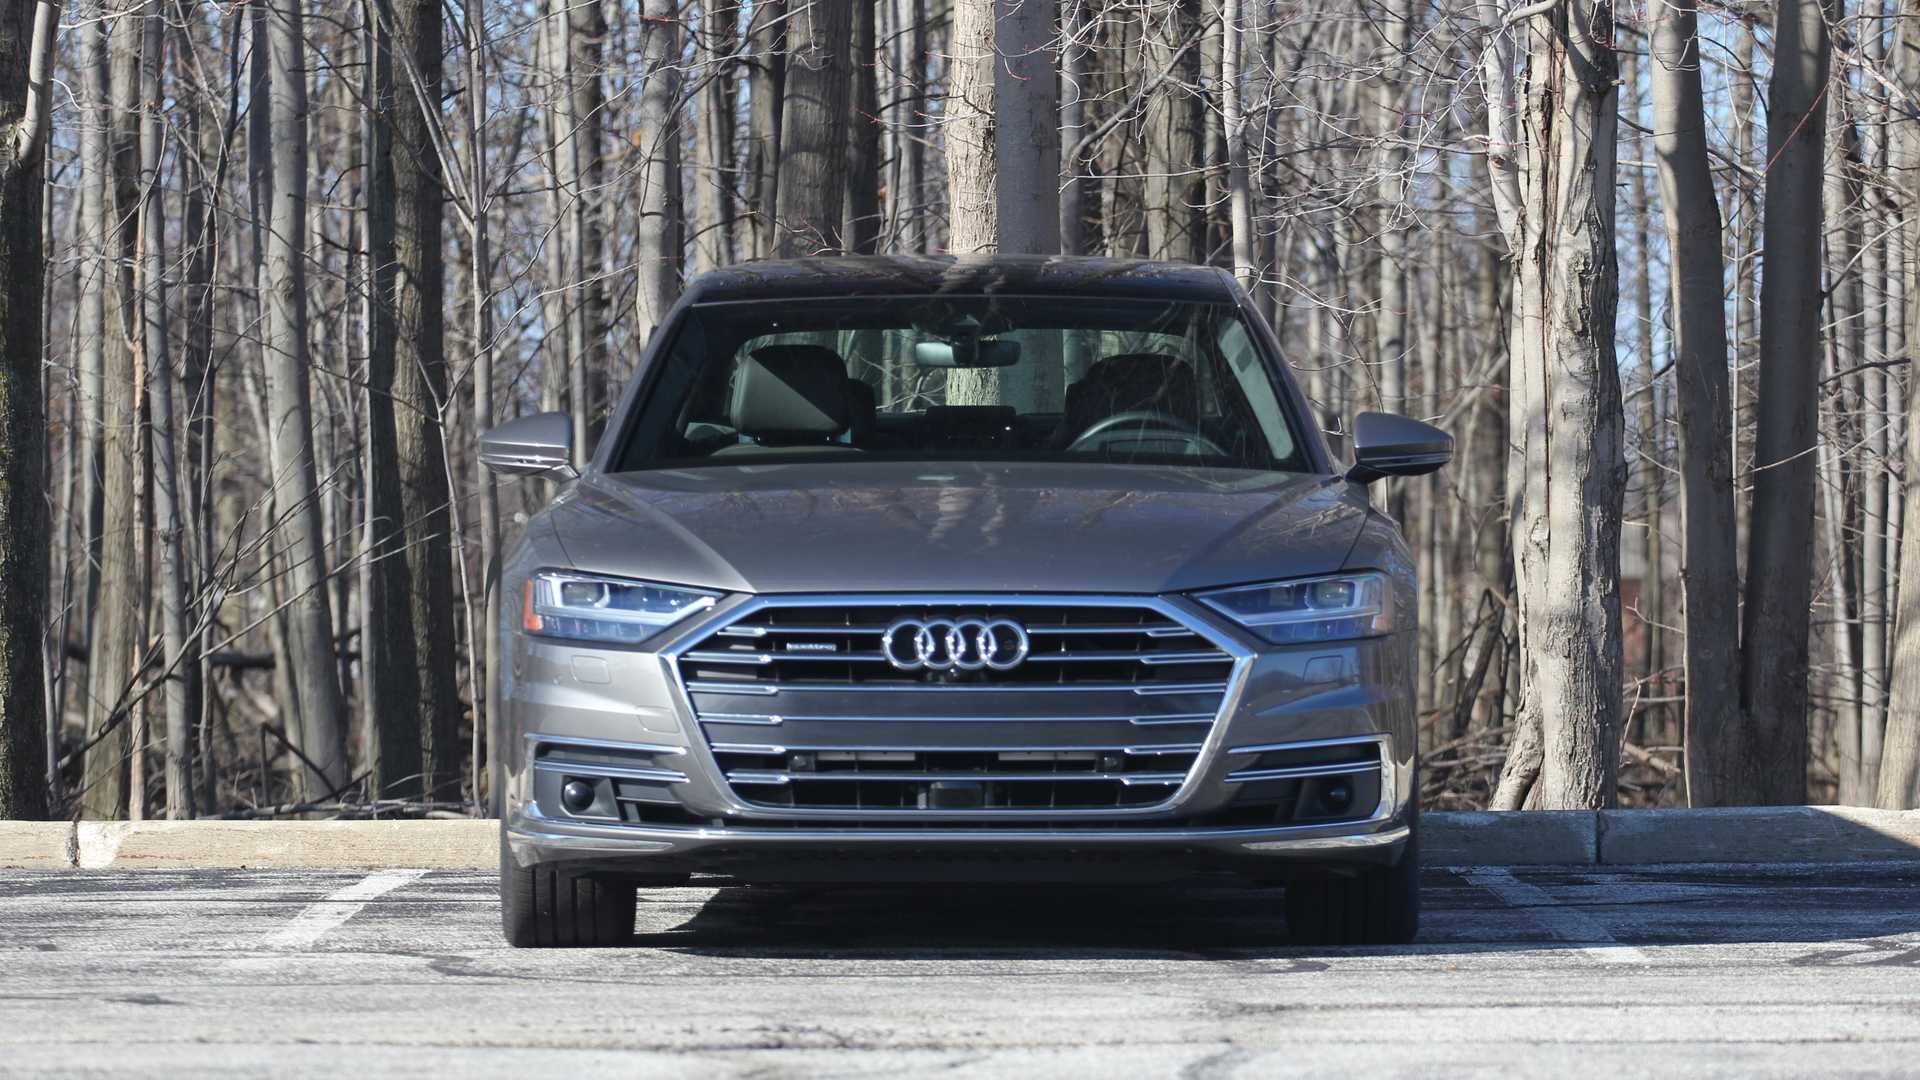 2019 Audi A8 Review: Try Harder